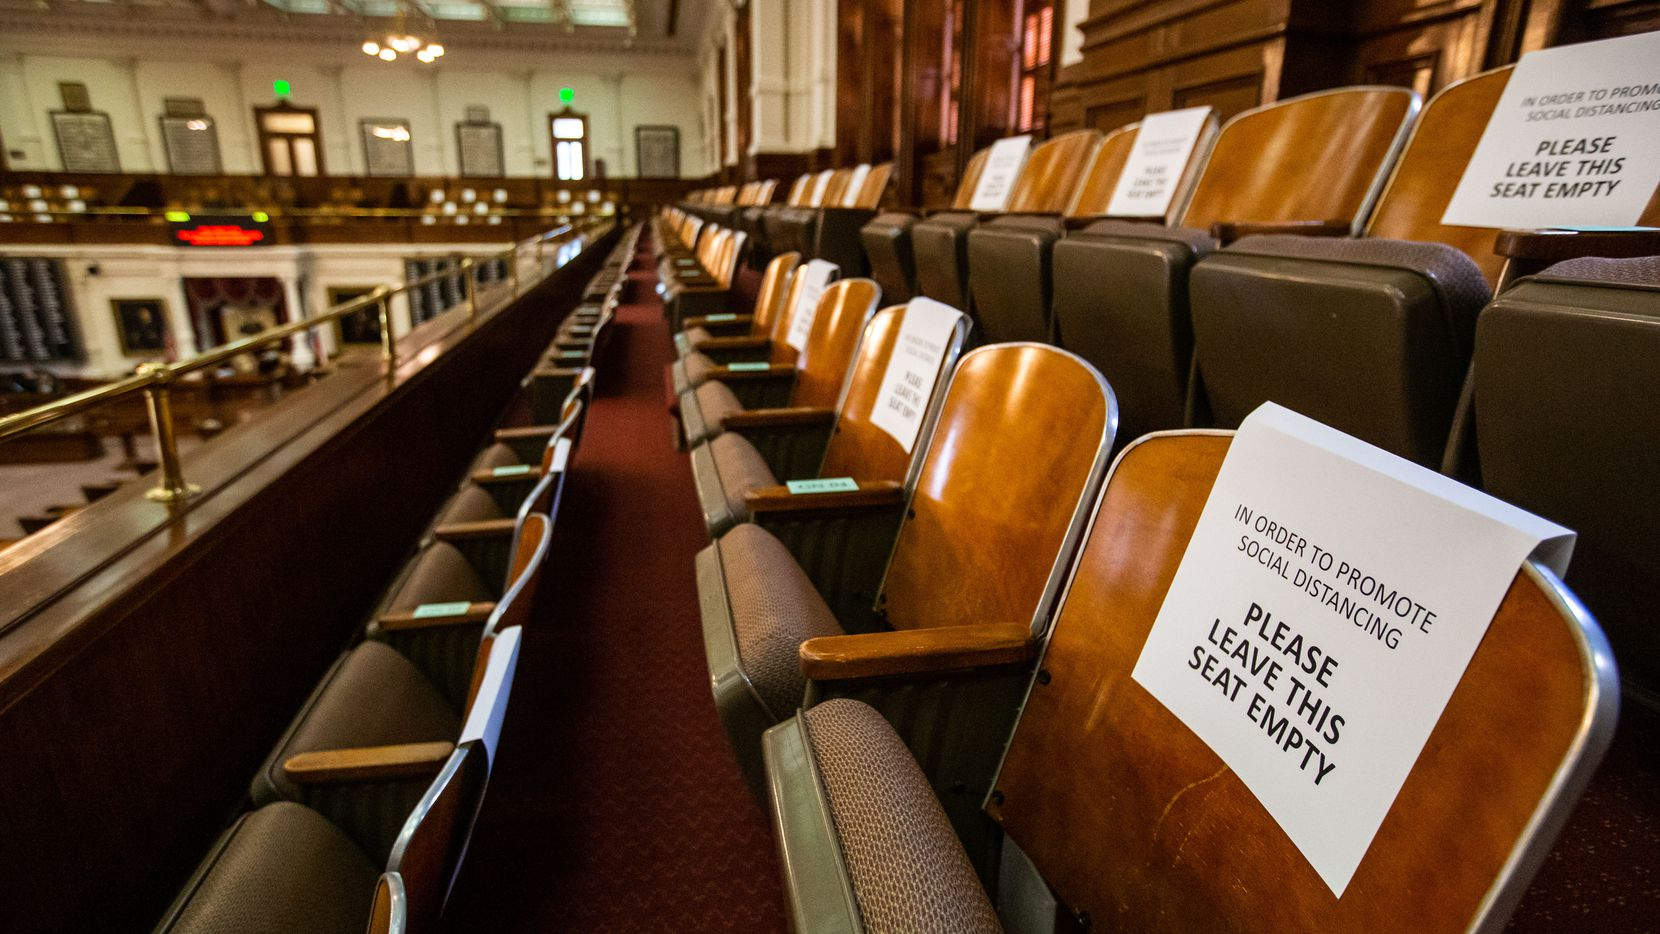 Signs enforcing physical distancing have been placed in guest seating areas in the House chamber at the Texas Capitol in Austin. The Legislature opens its session Tuesday amid a pandemic, economic recession and political strife.